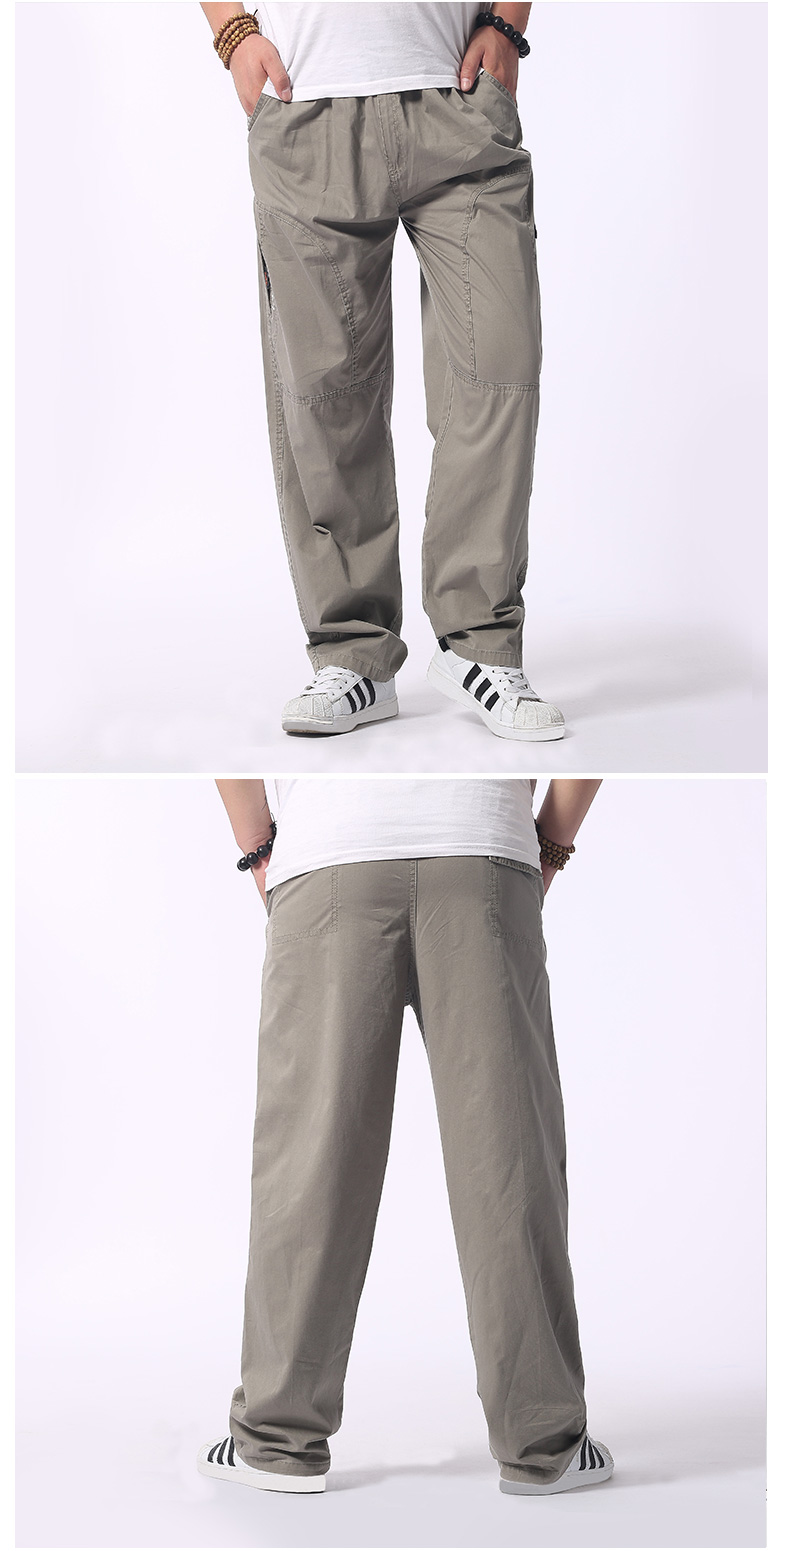 Man Loose Fitting Cargo Pants Yellow Black Gray Khaki  Overall For Mens Cotton Comfort Trousers Elastic Waist Pant American Apparel (11)